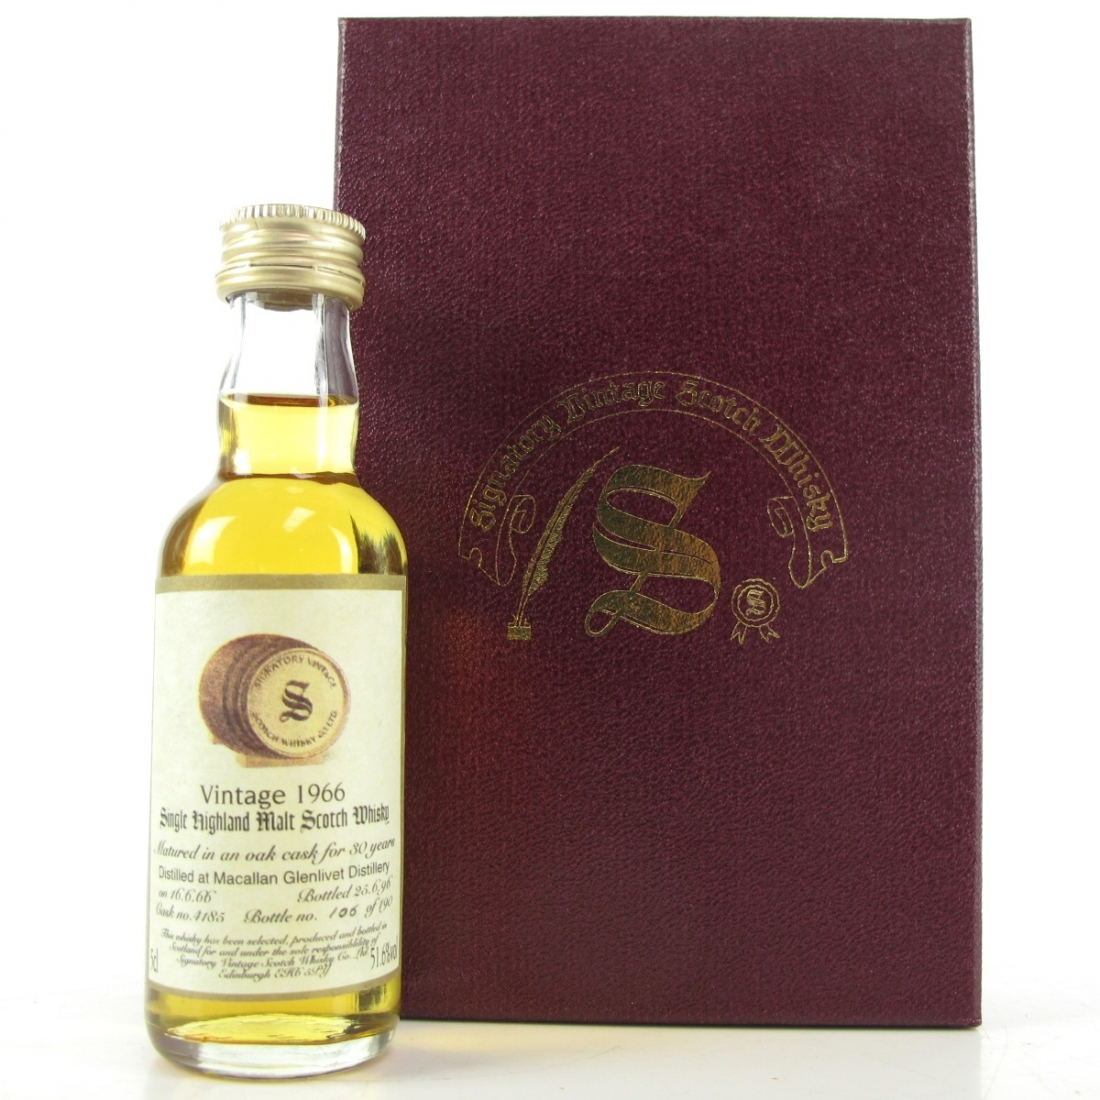 Macallan 1966 Signatory Vintage 30 Year Old Miniature 5cl